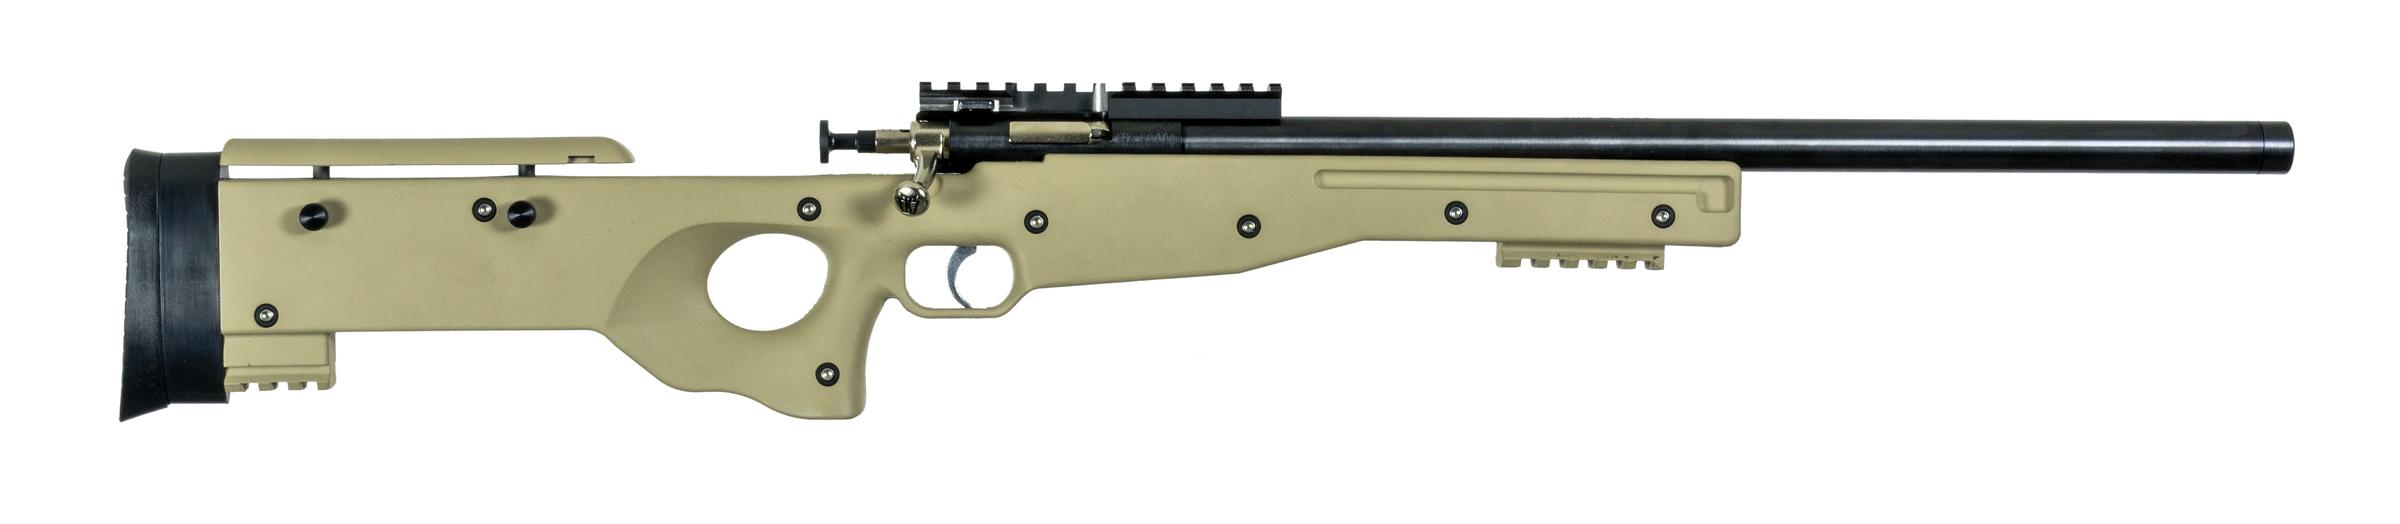 Crickett Precision Rifle Only-